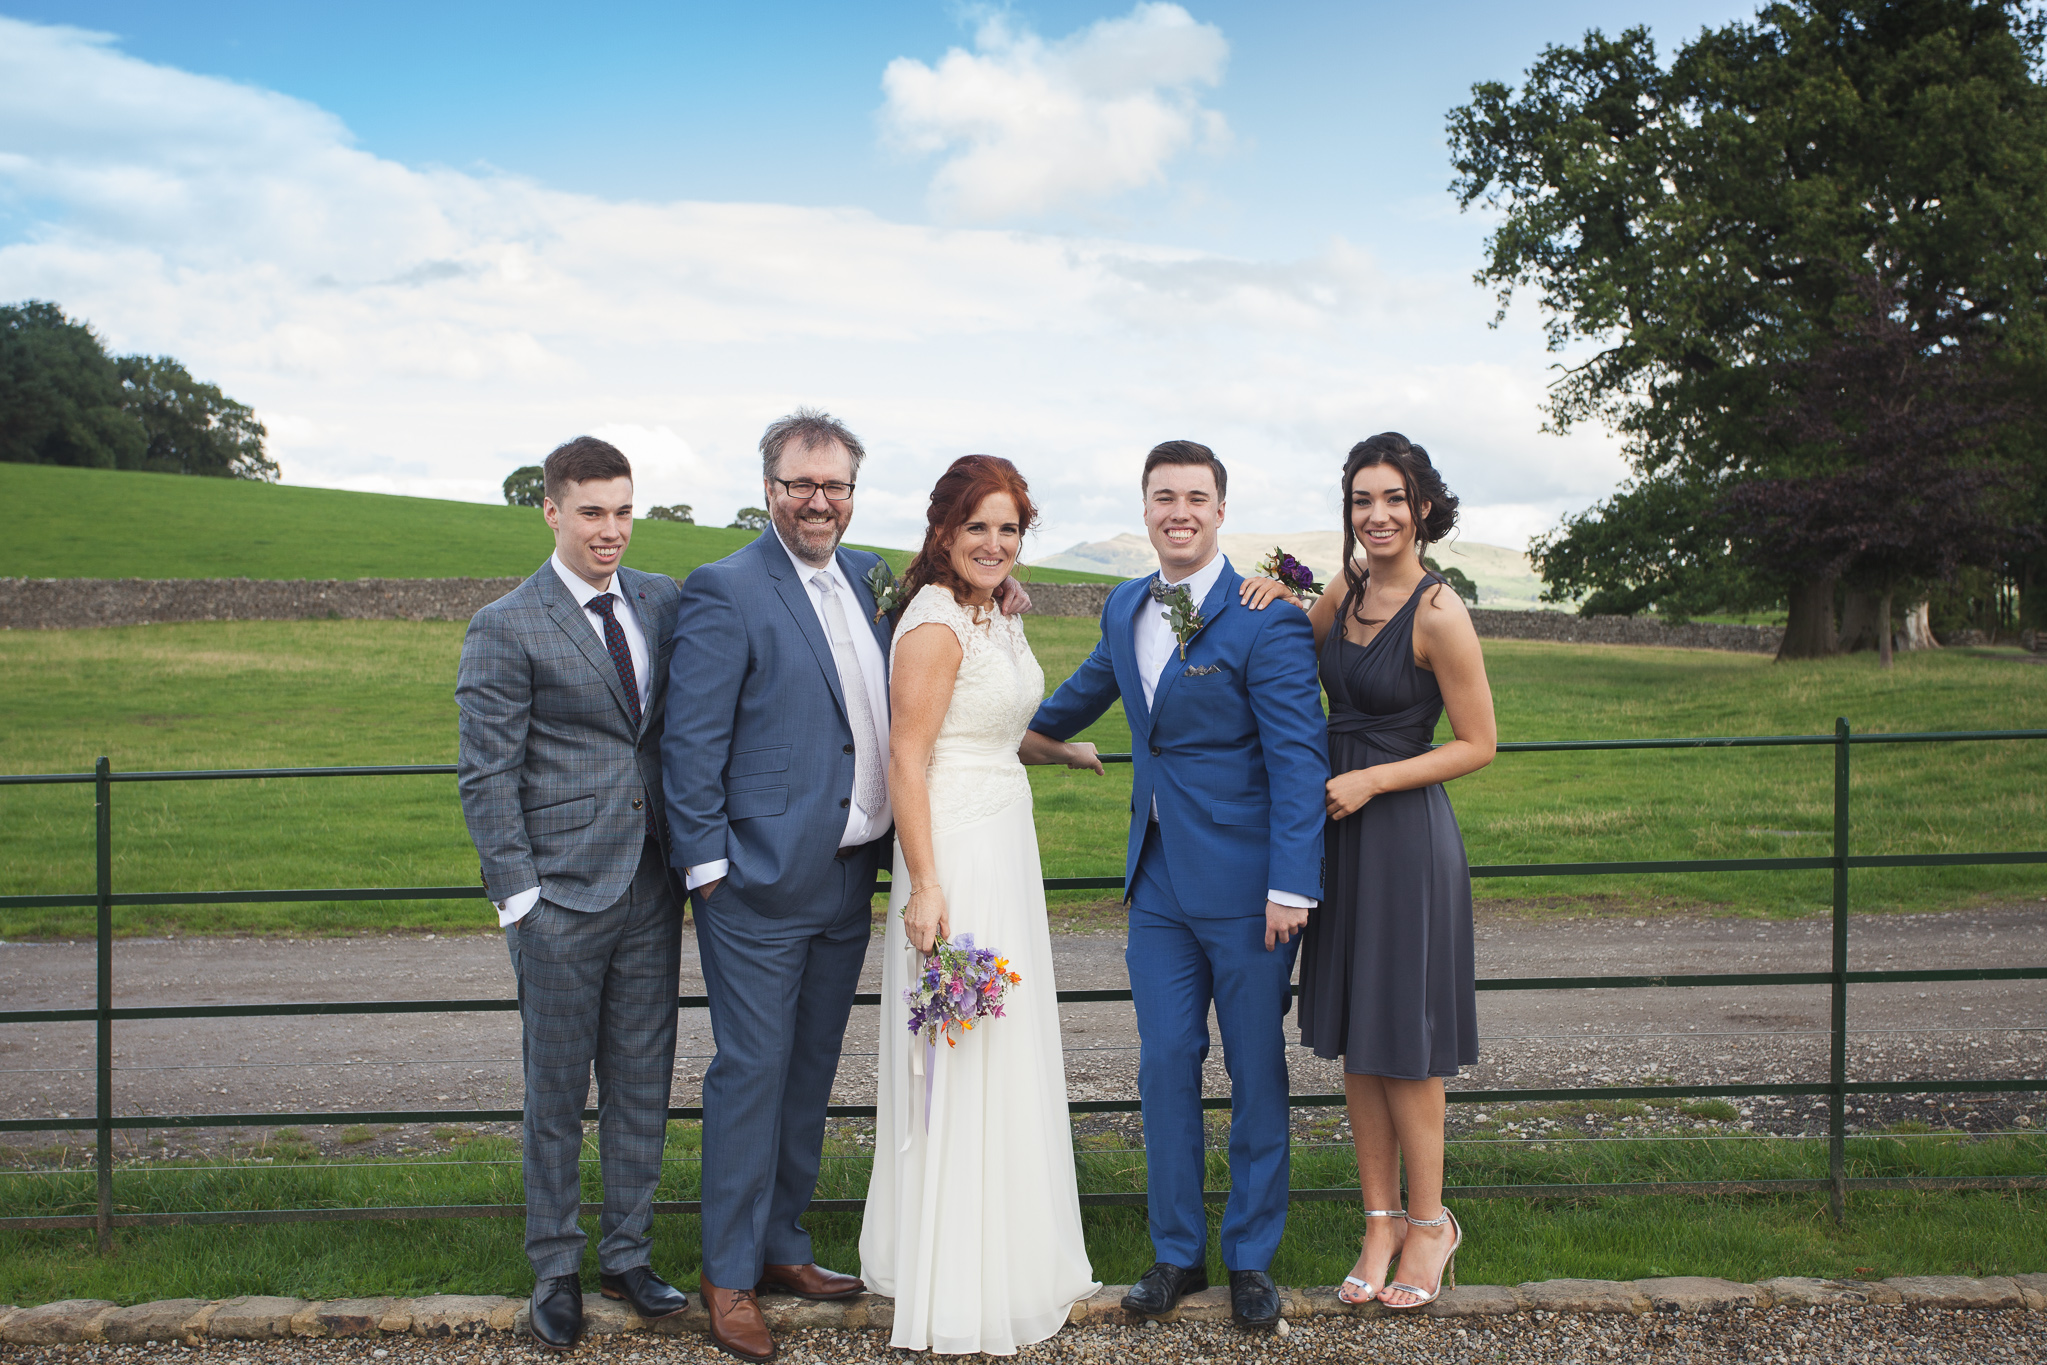 Eden Broughton Hall wedding photographer